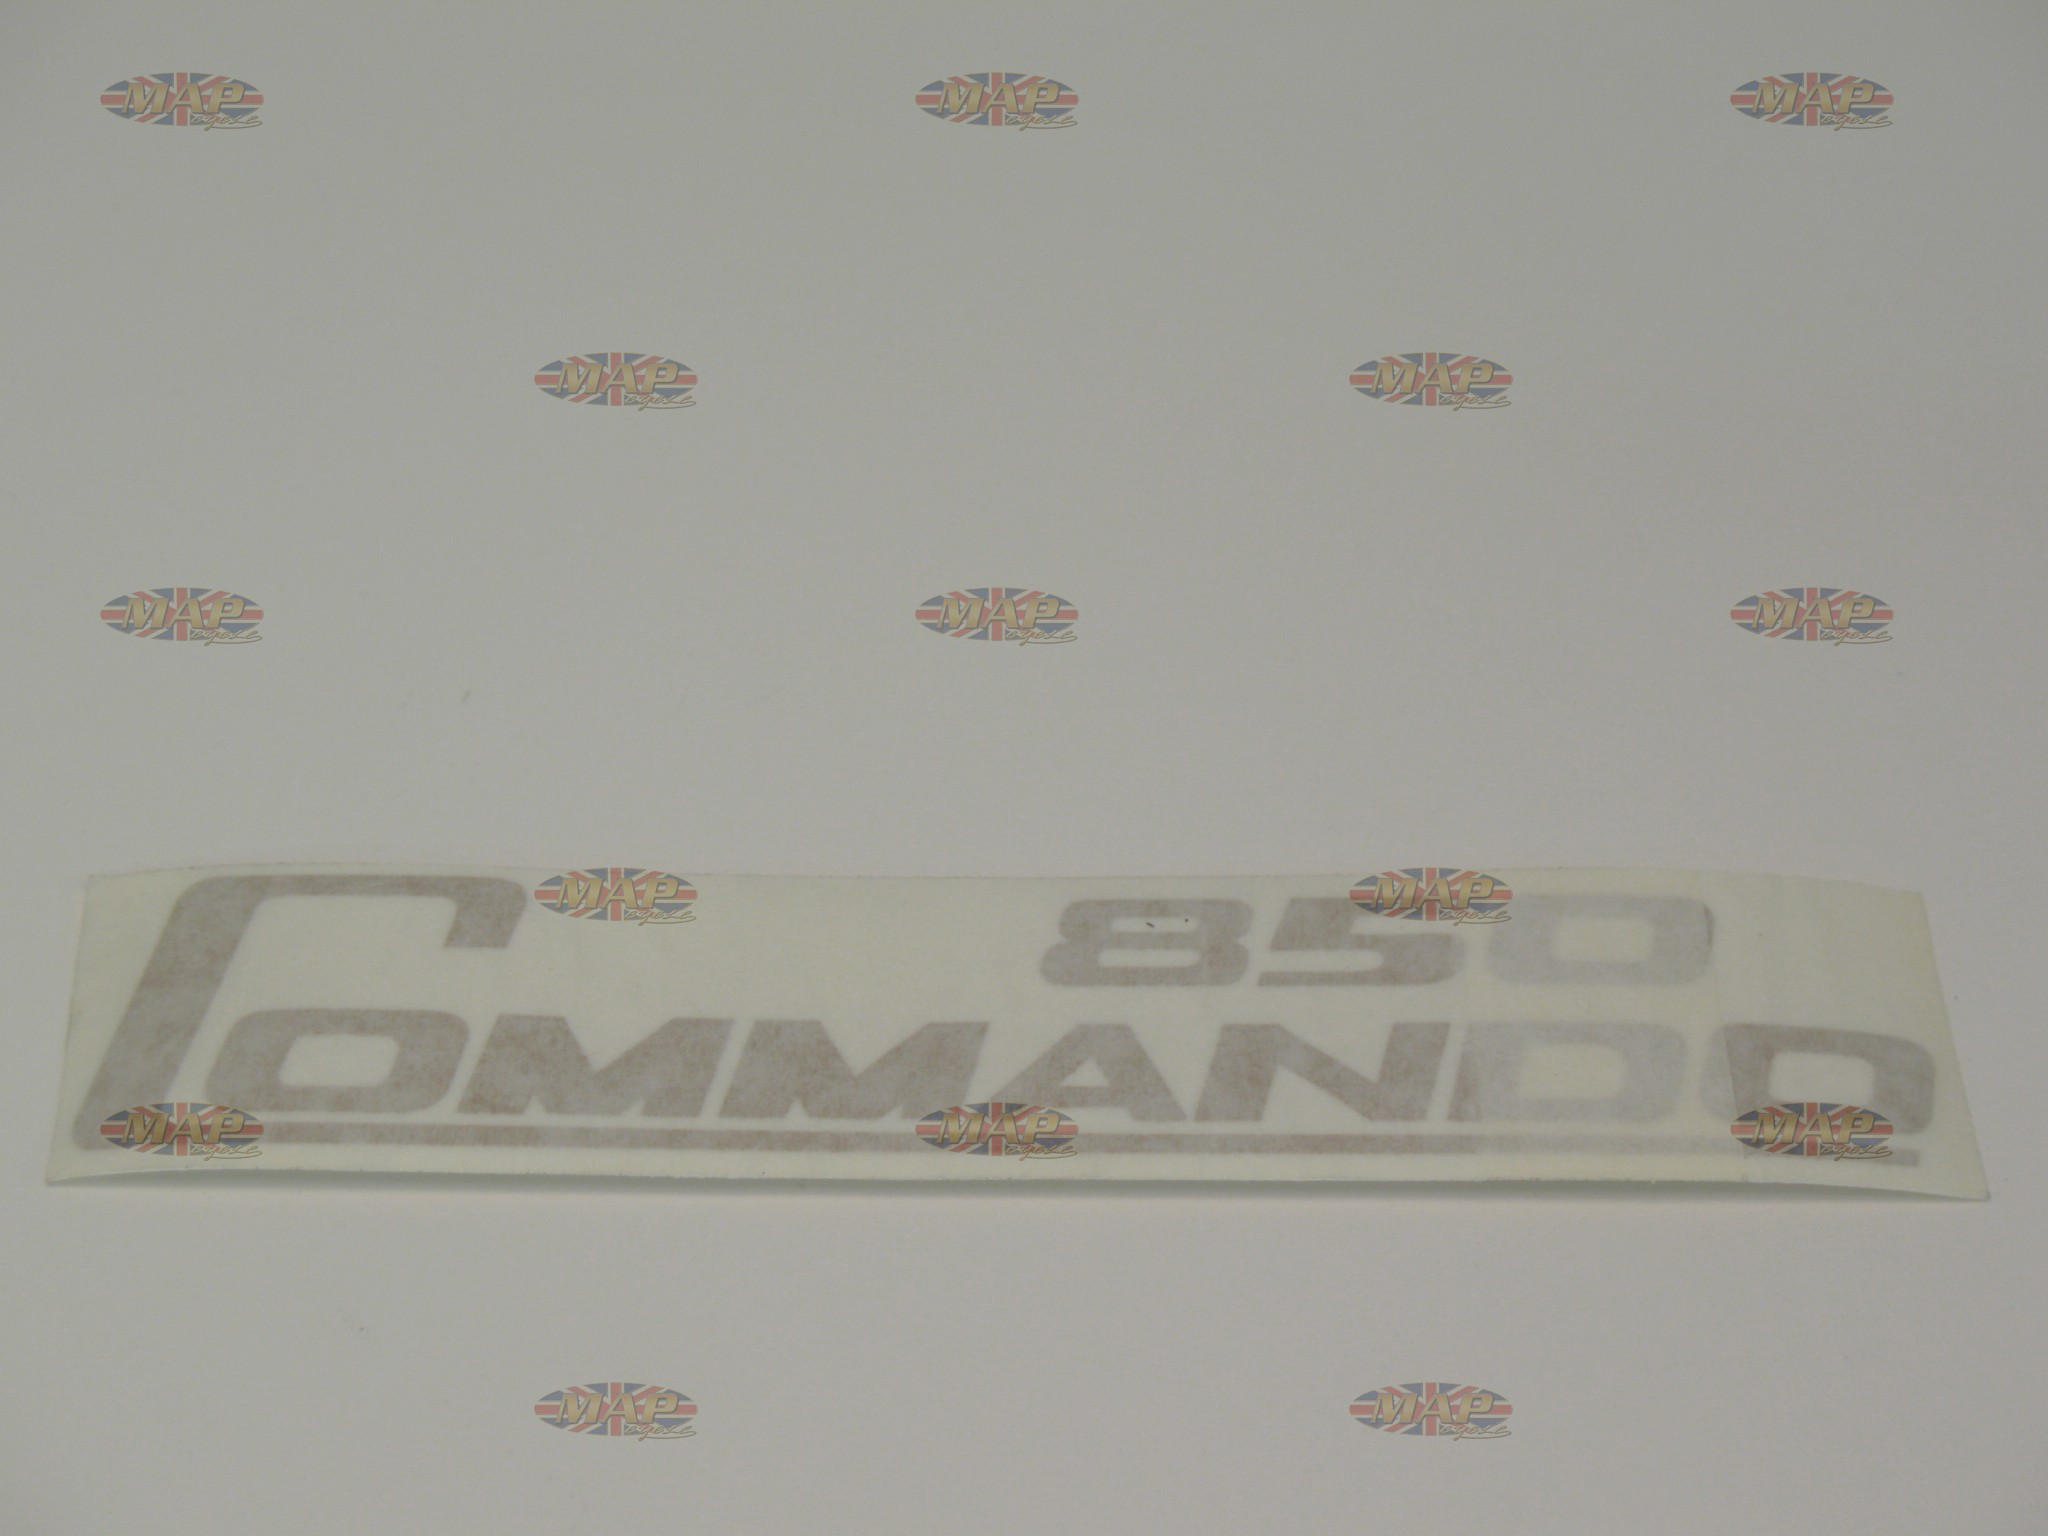 DECAL/  850 COMMANDO  GOLD (OE PEEL OFF) 06-5097